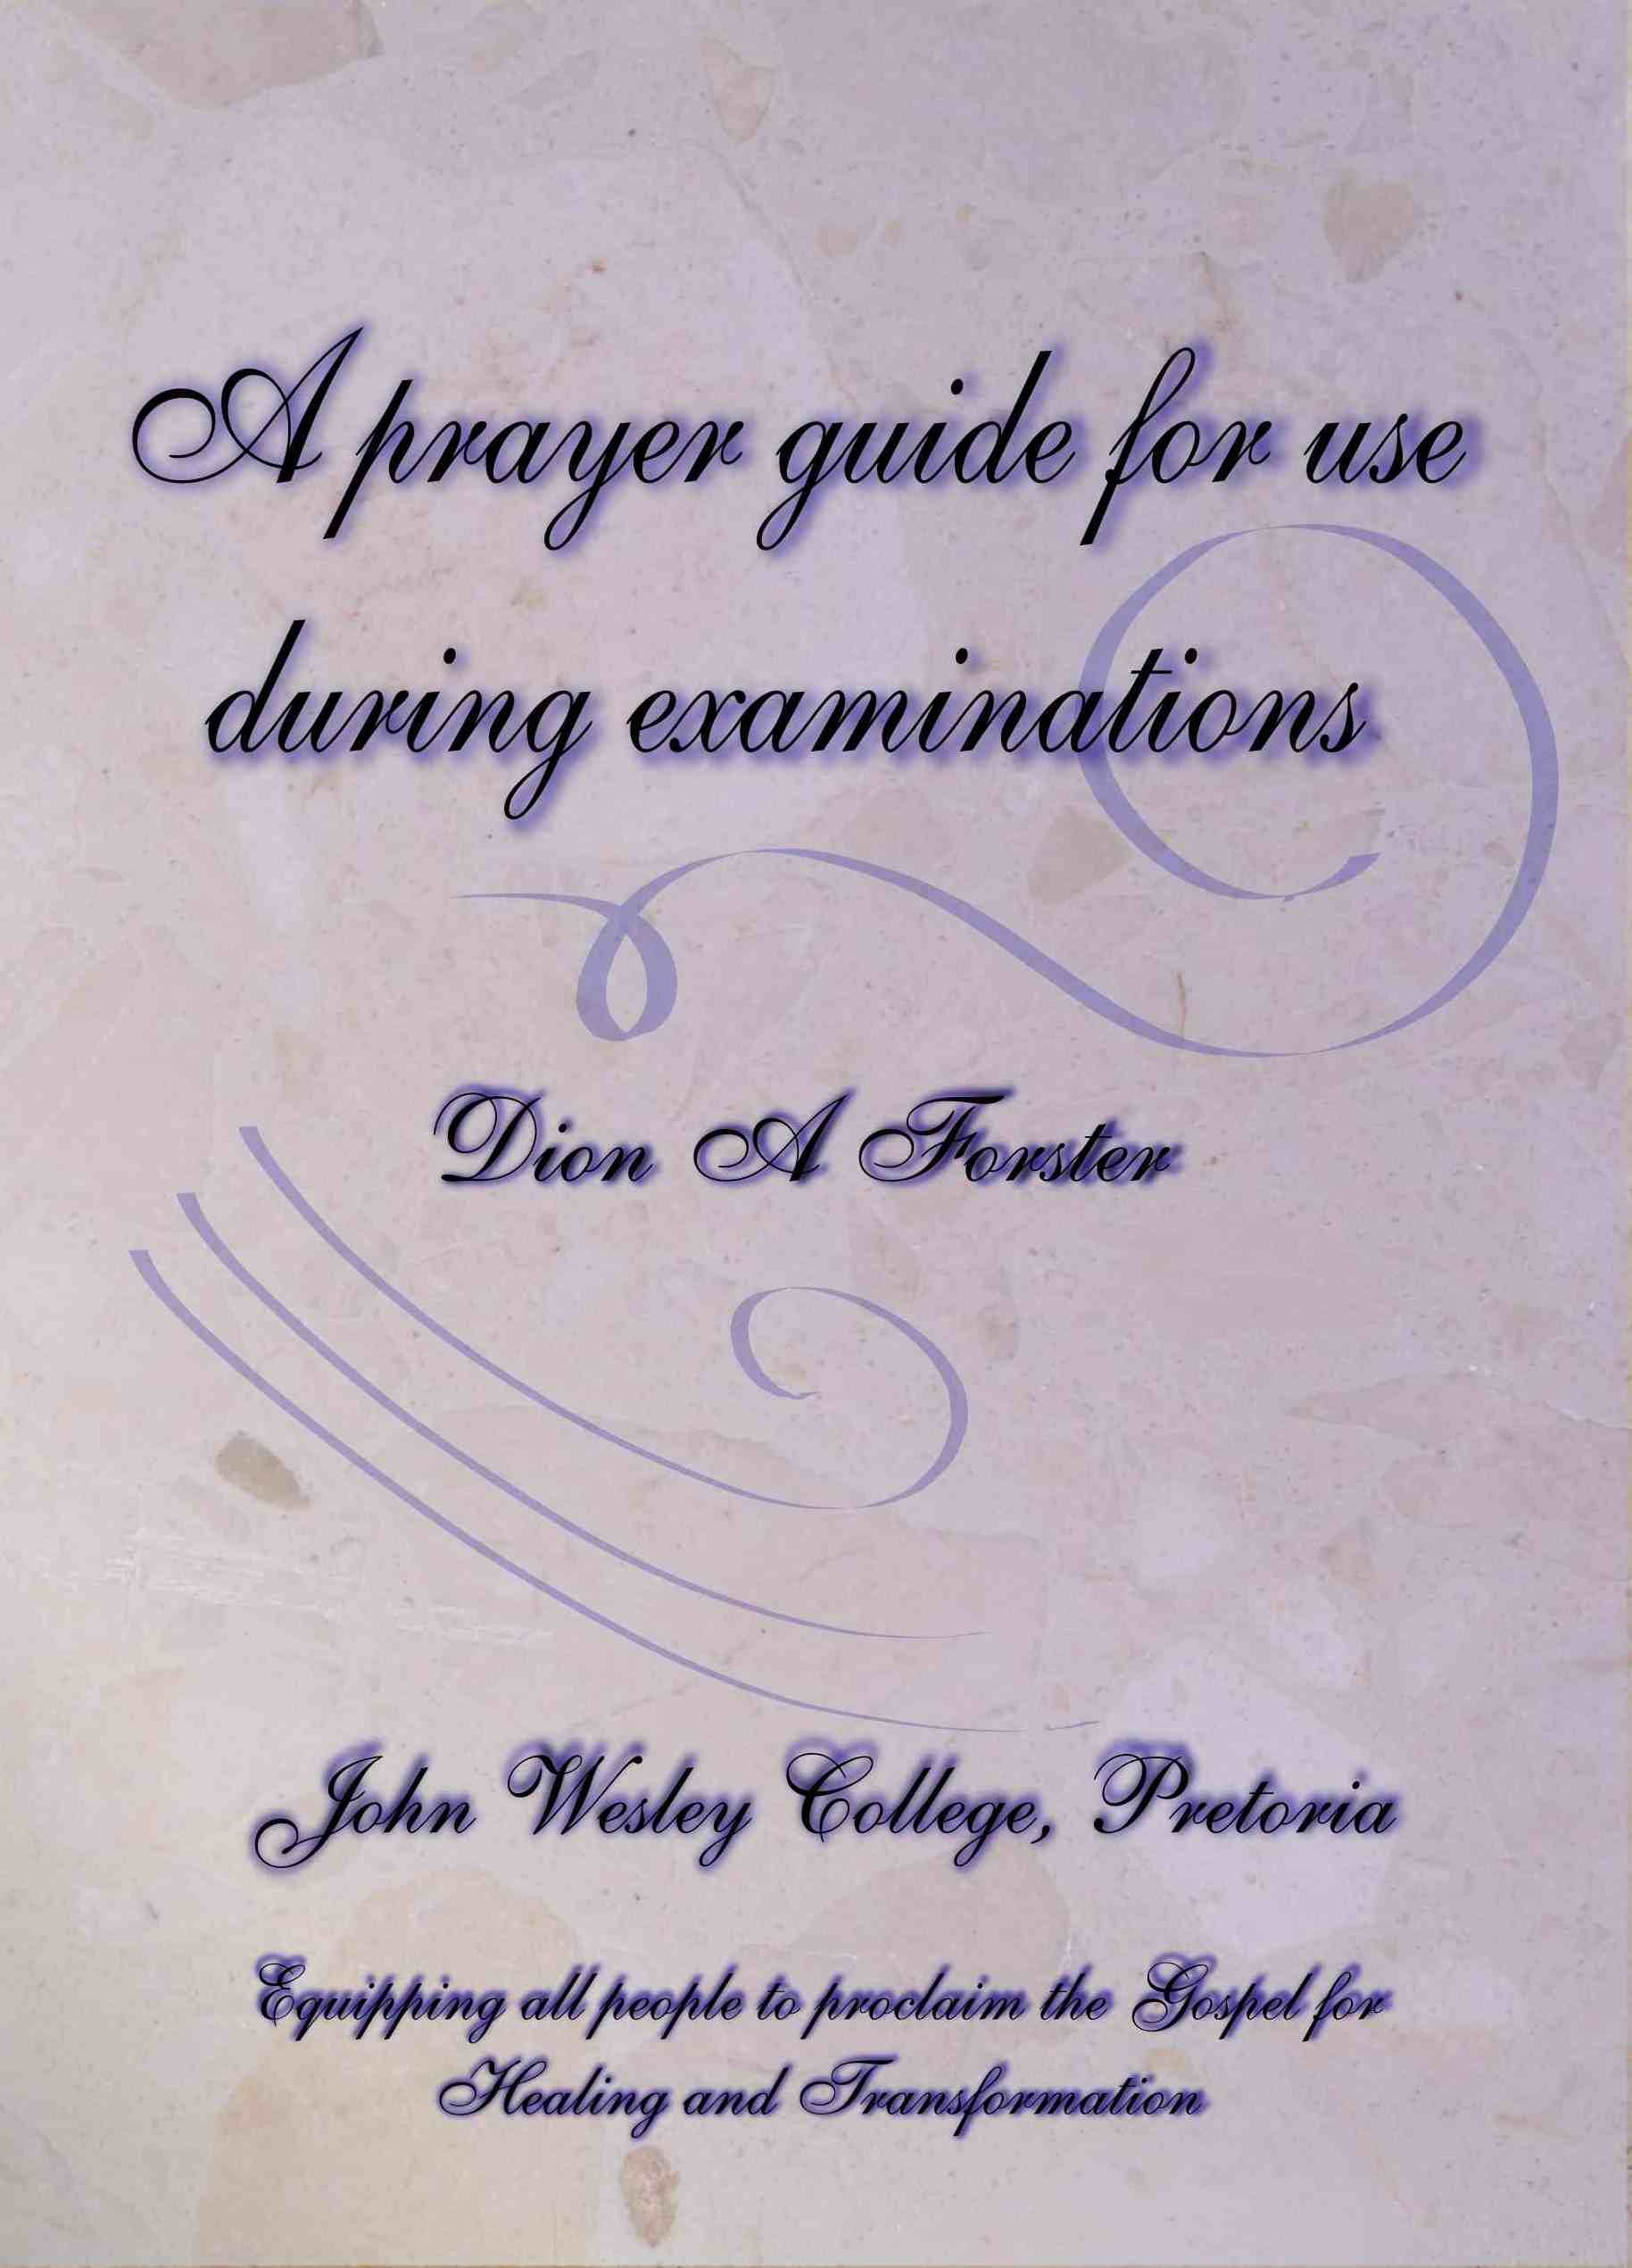 Prayer Guide for use during examinations